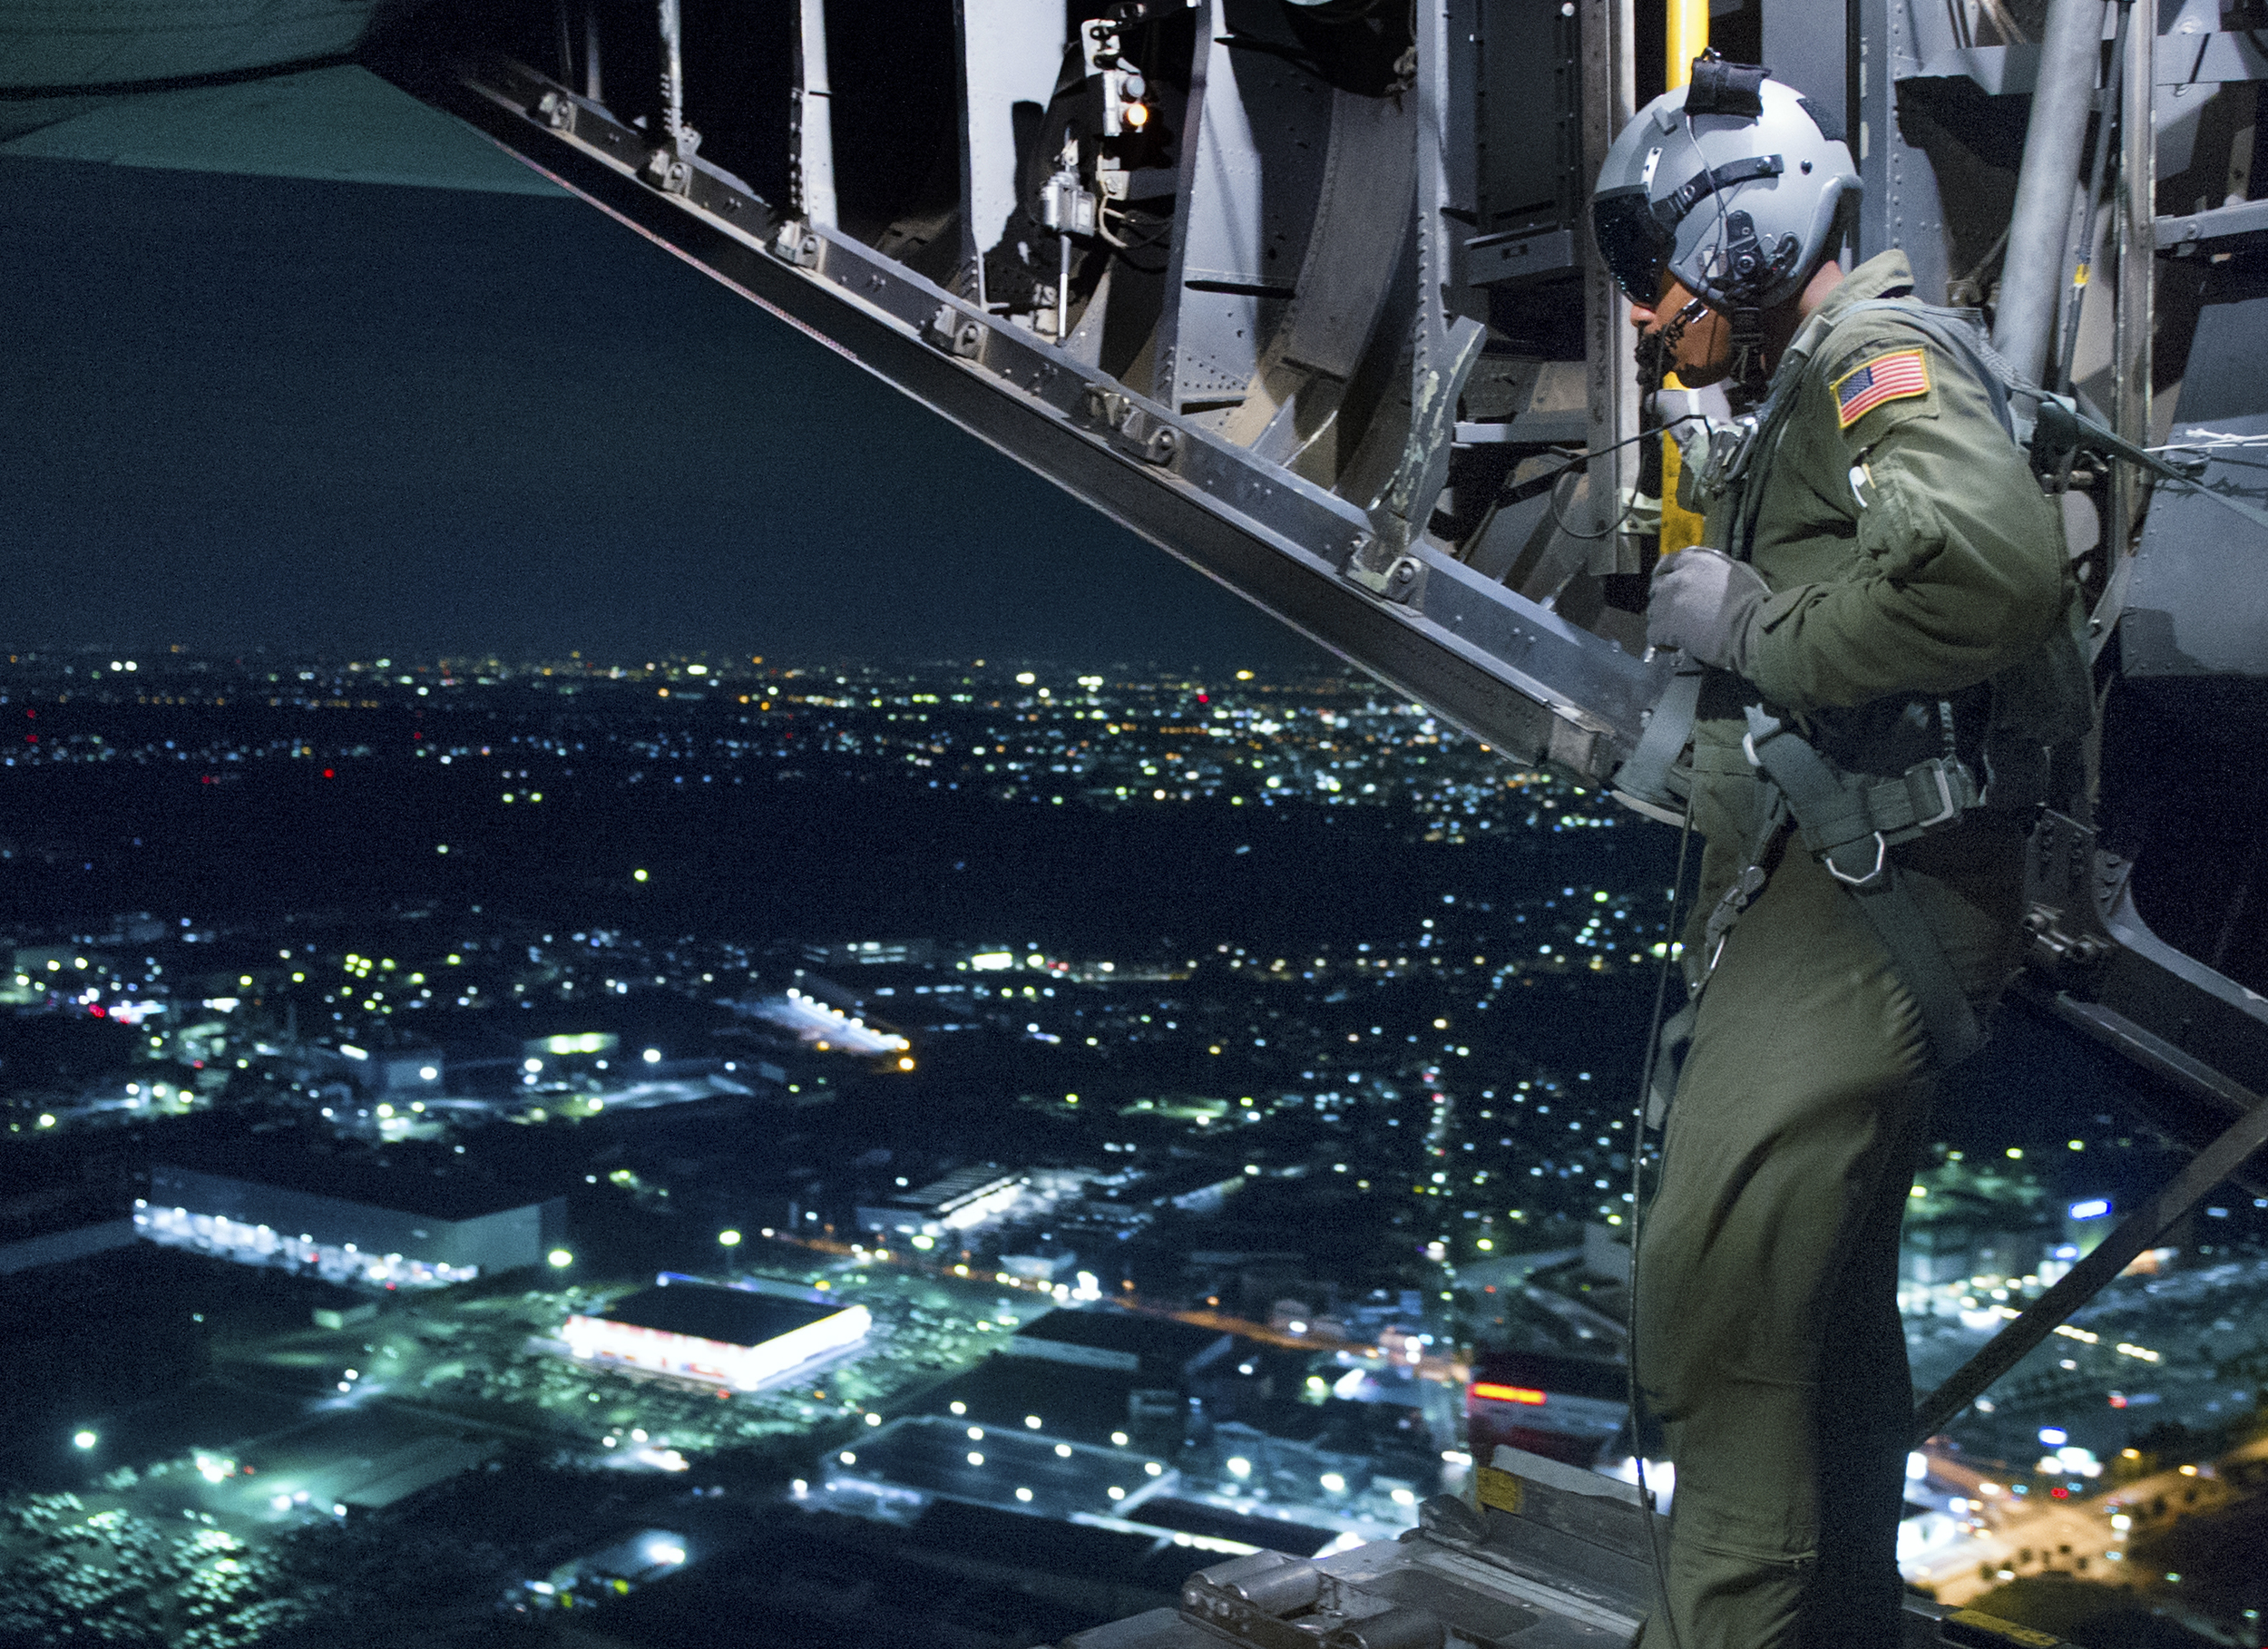 Senior Airman Gary Cole, 36th Airlift Squadron loadmaster, surveys a drop zone at Yokota Air Base, Japan, Oct. 14, 2015. The C-130 Hercules crew performed simulated drops and several landings and takeoffs all while using night vision goggles. (U.S. Air Force photo by Airman 1st Class Delano Scott/Released)